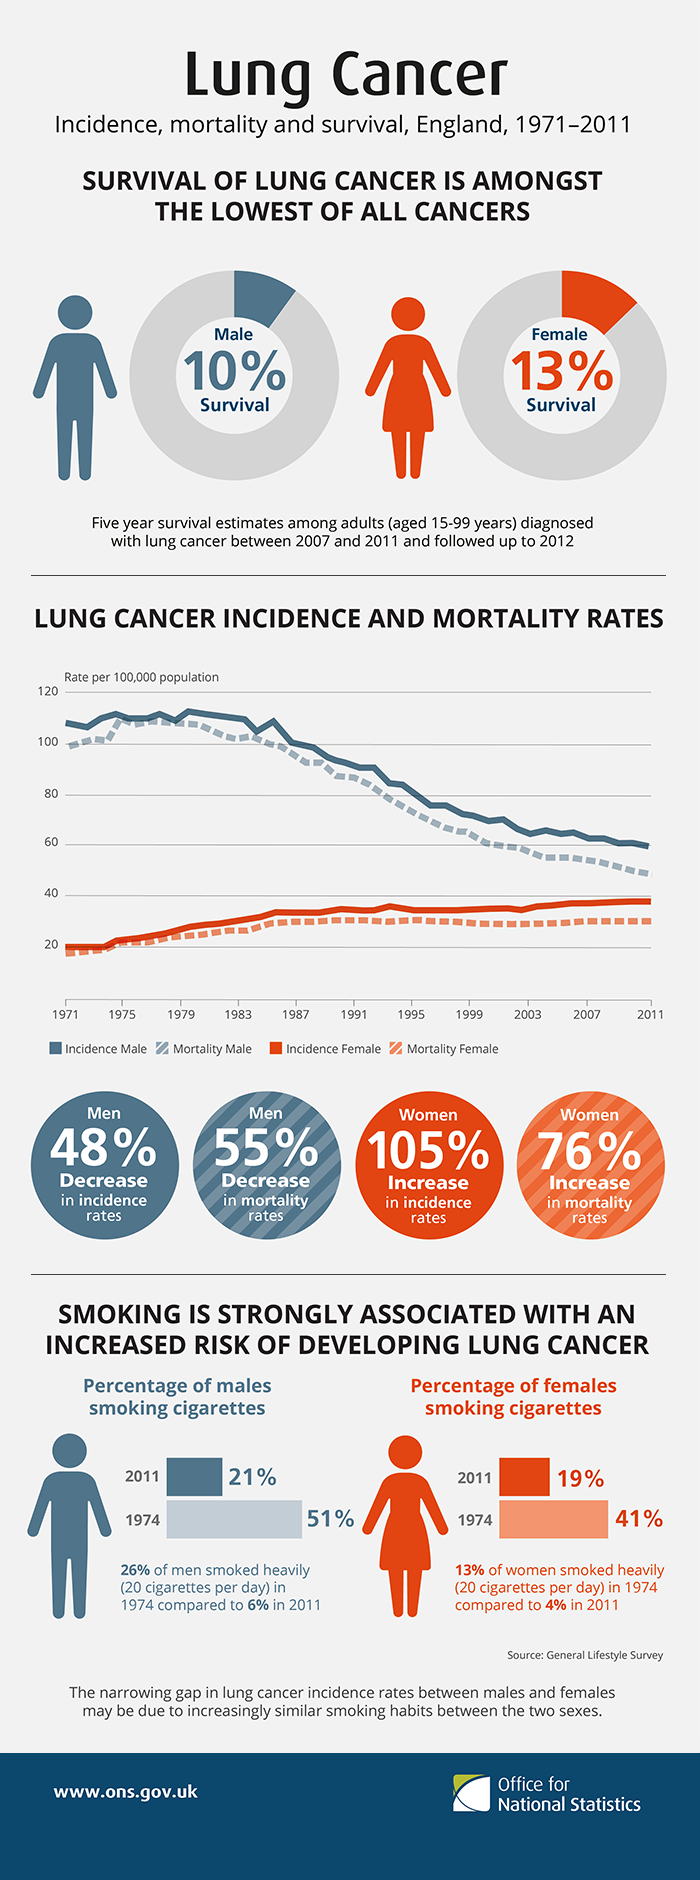 Lung cancer, incidence, mortality and survival, England 1971 - 2011